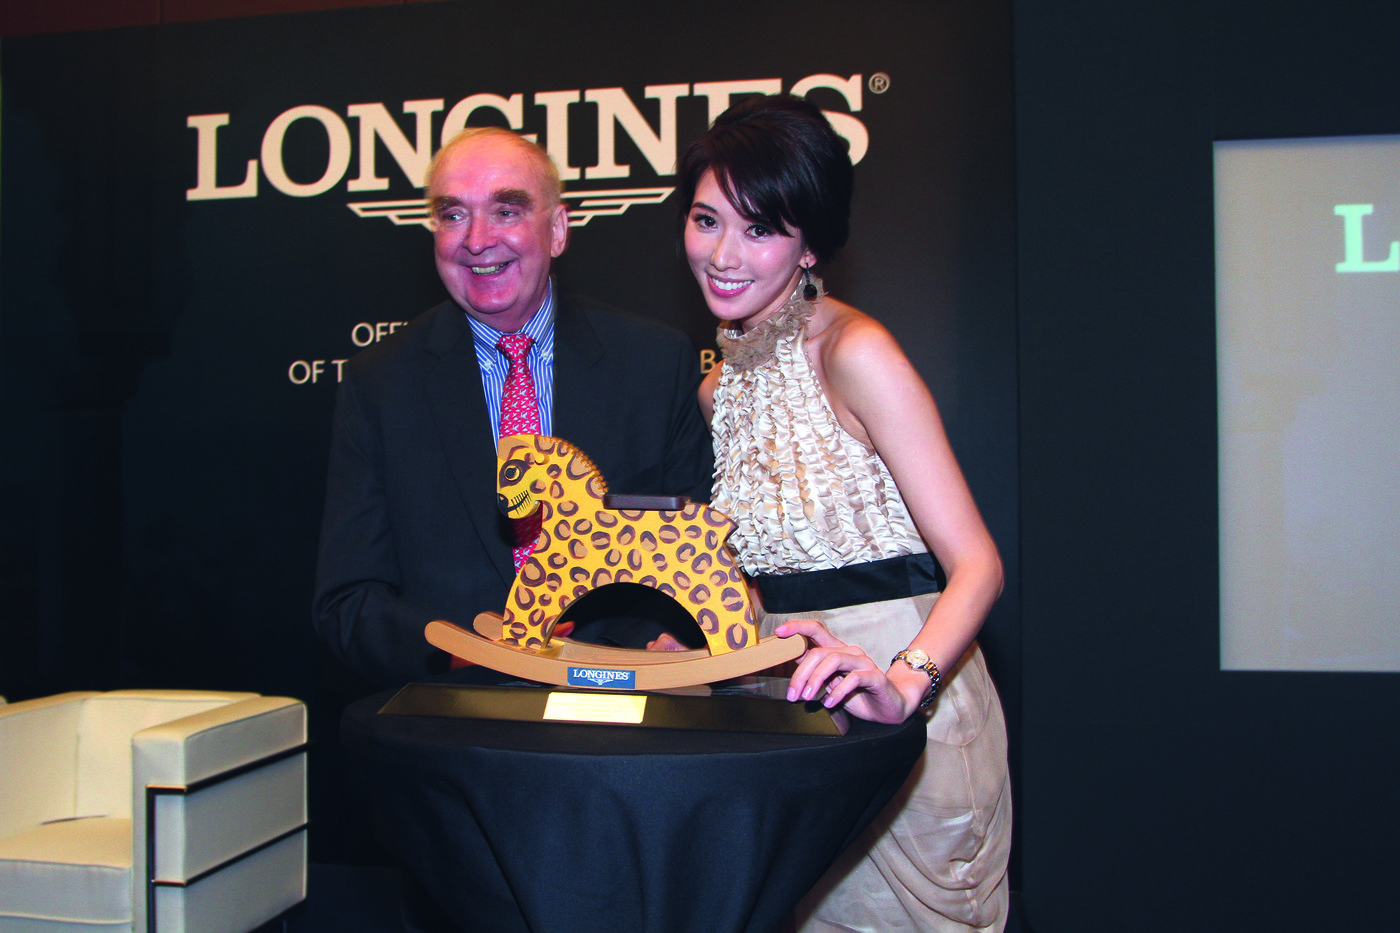 Longines Flat Racing Event: Longines Opens its 3rd Flagship Boutique and announces its new partnership with the Singapore Turf Club 5